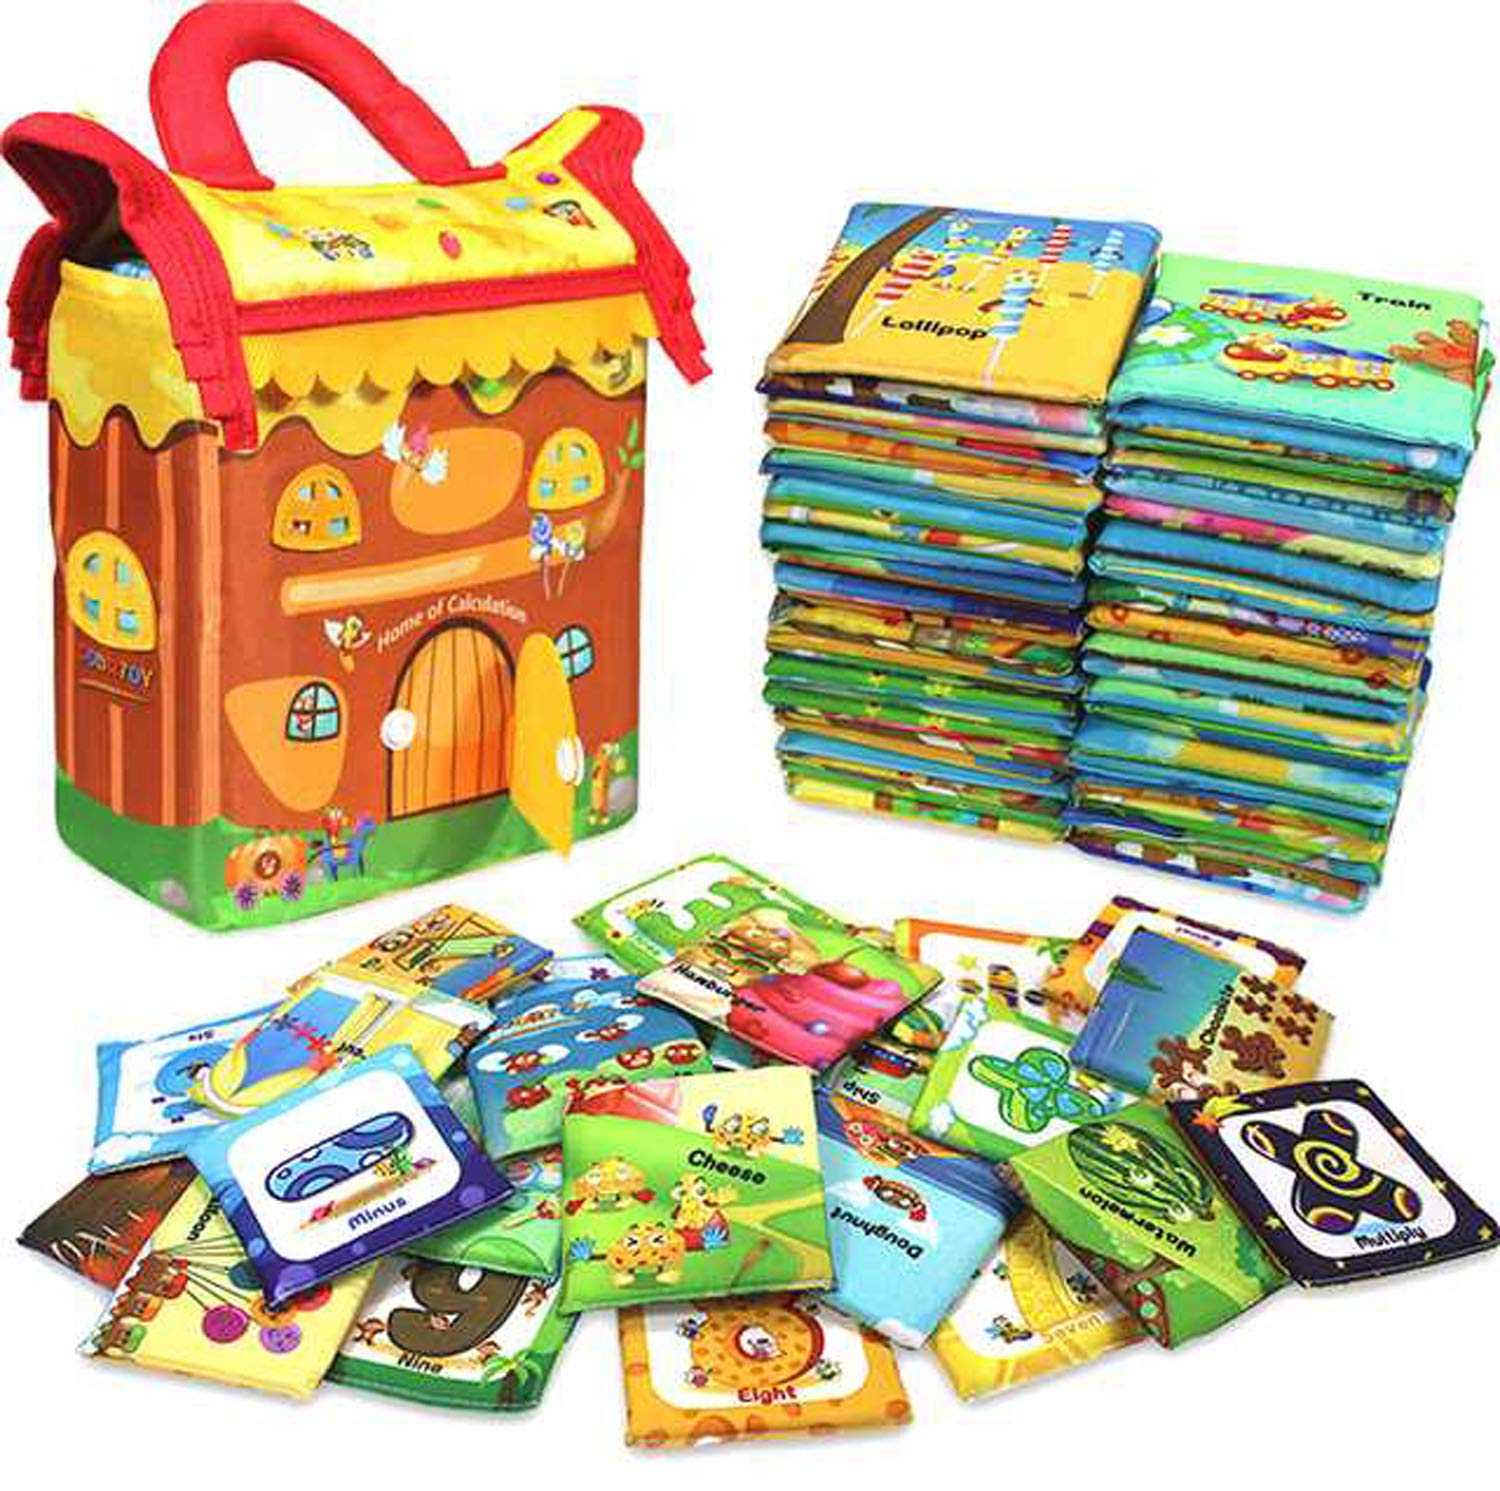 GODR7OY Baby Activity 46pcs Numbers and Animals Soft Cloth Cards with Cloth Bag for Infants Boys and Girls Educational Toys